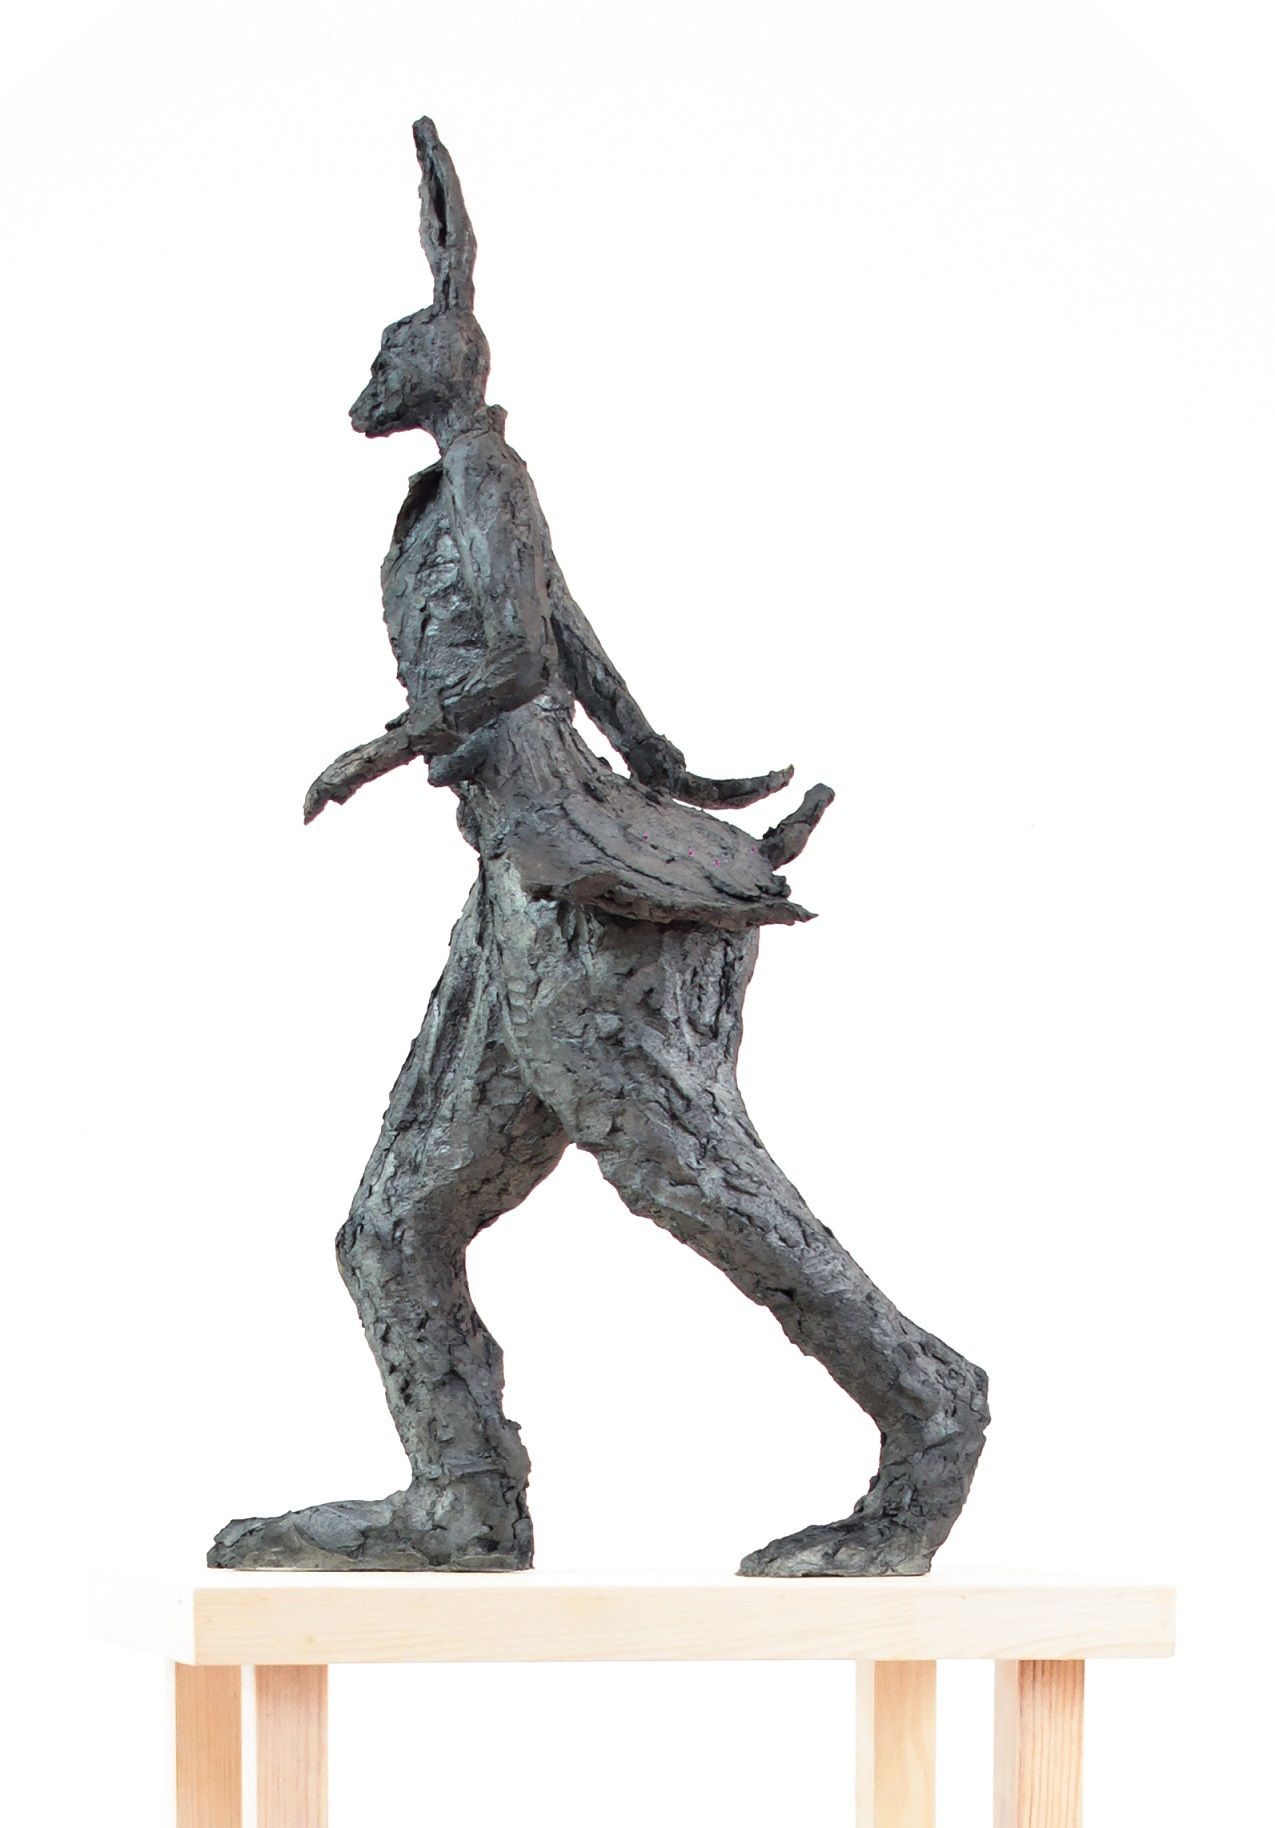 Walking Hare - Cécile Raynal - Sculpture - detail 1